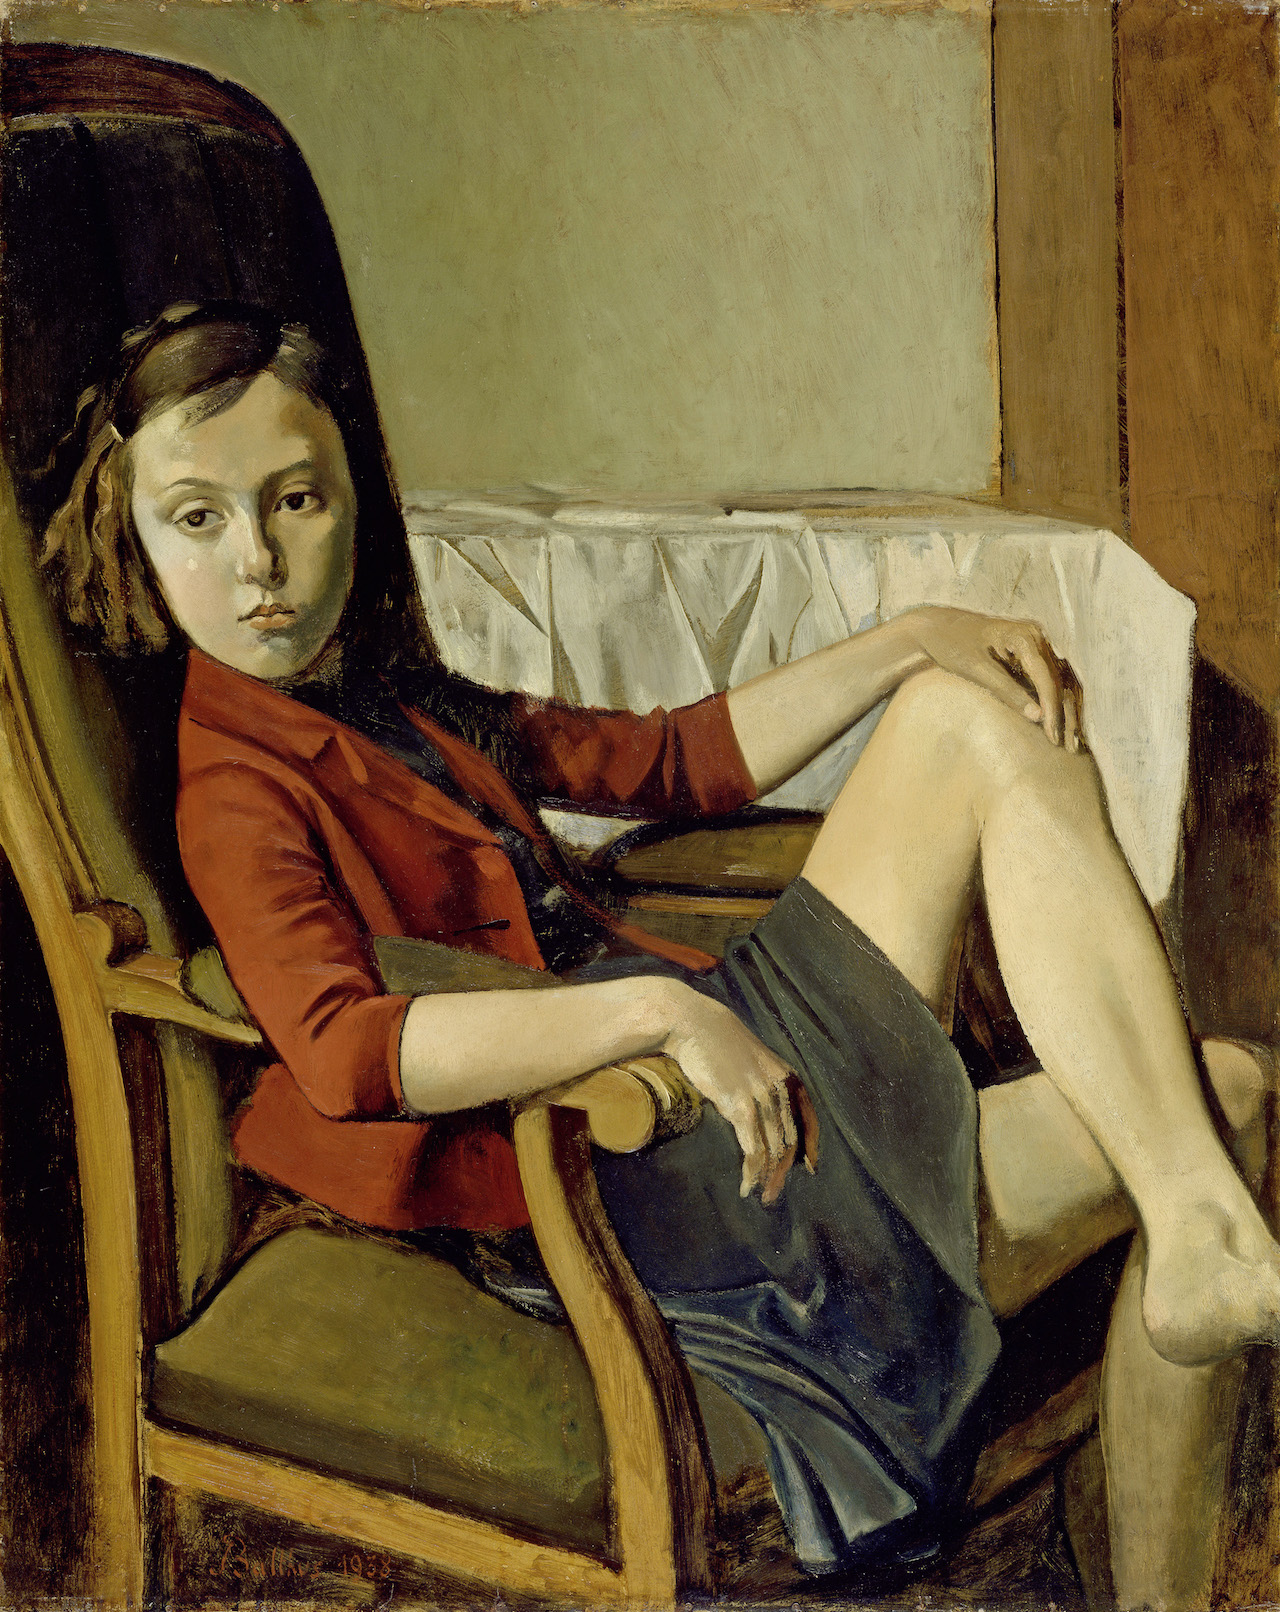 Balthus_New-York_-MET_The___uere___Cse_GROSS_LAC_378x300mm.jpg